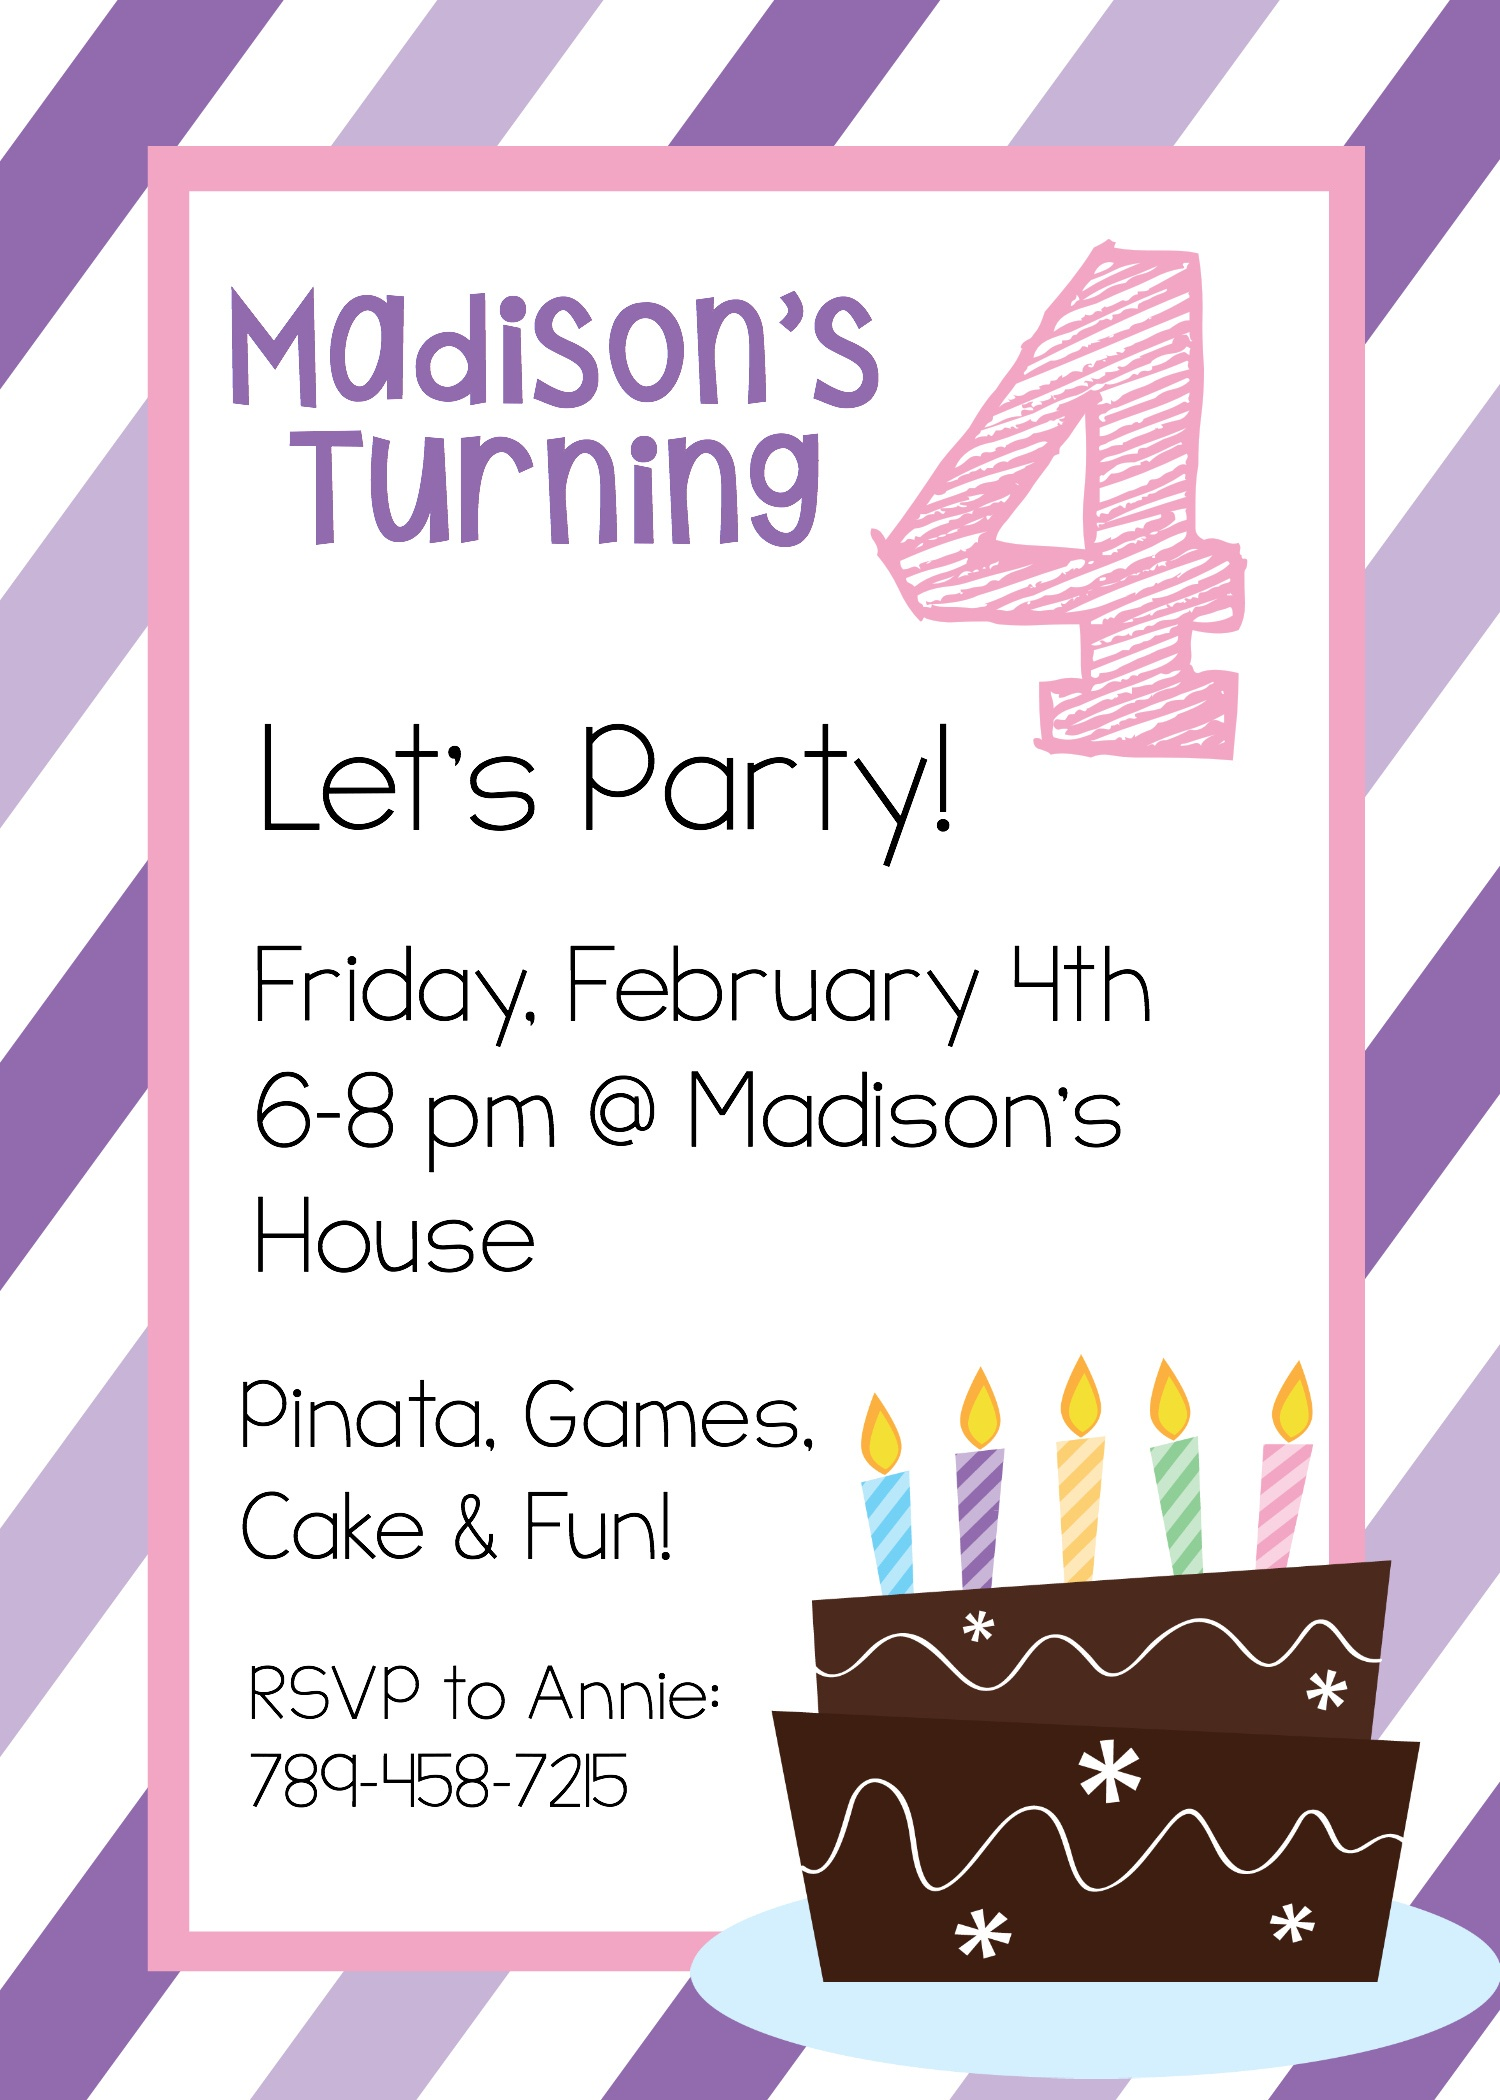 Free Printable Birthday Invitation Templates - Free Printable Birthday Invitation Templates